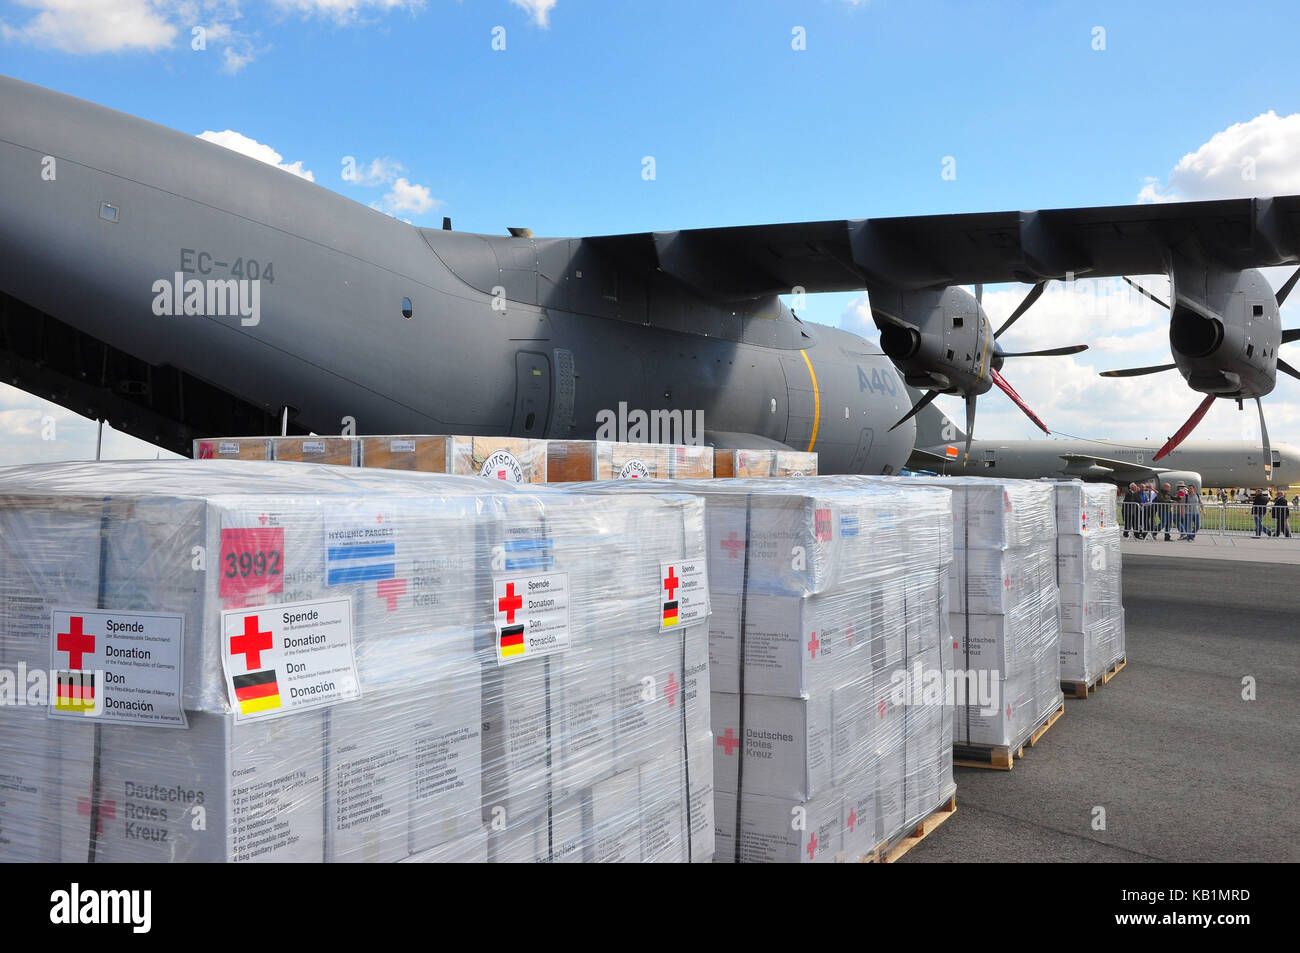 Germany, Berlin, ILA 2012, Red Cross, disaster help, transport plane, airbus A400, - Stock Image